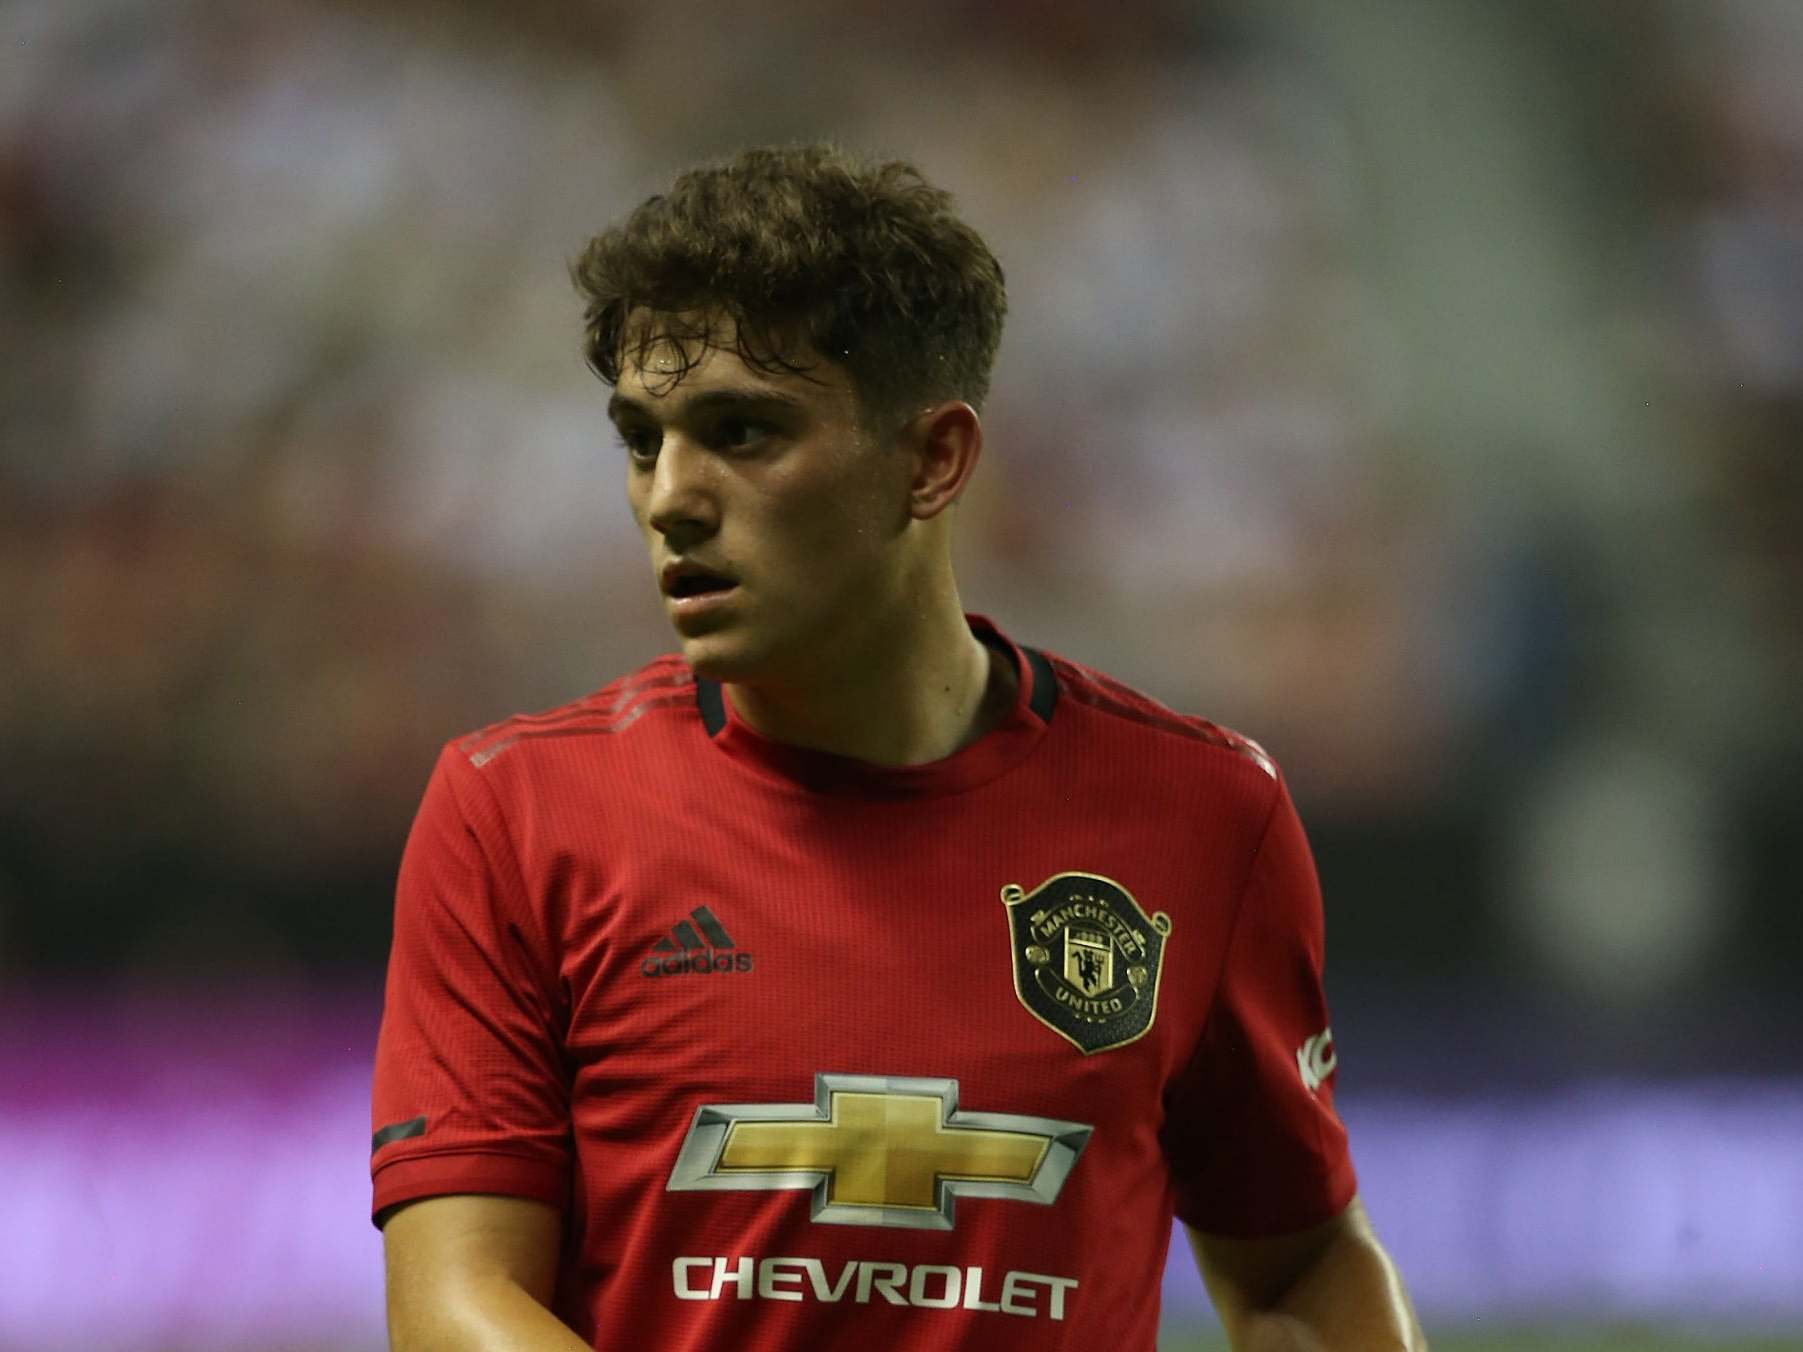 Daniel James Swoops Up August Player Of The Month